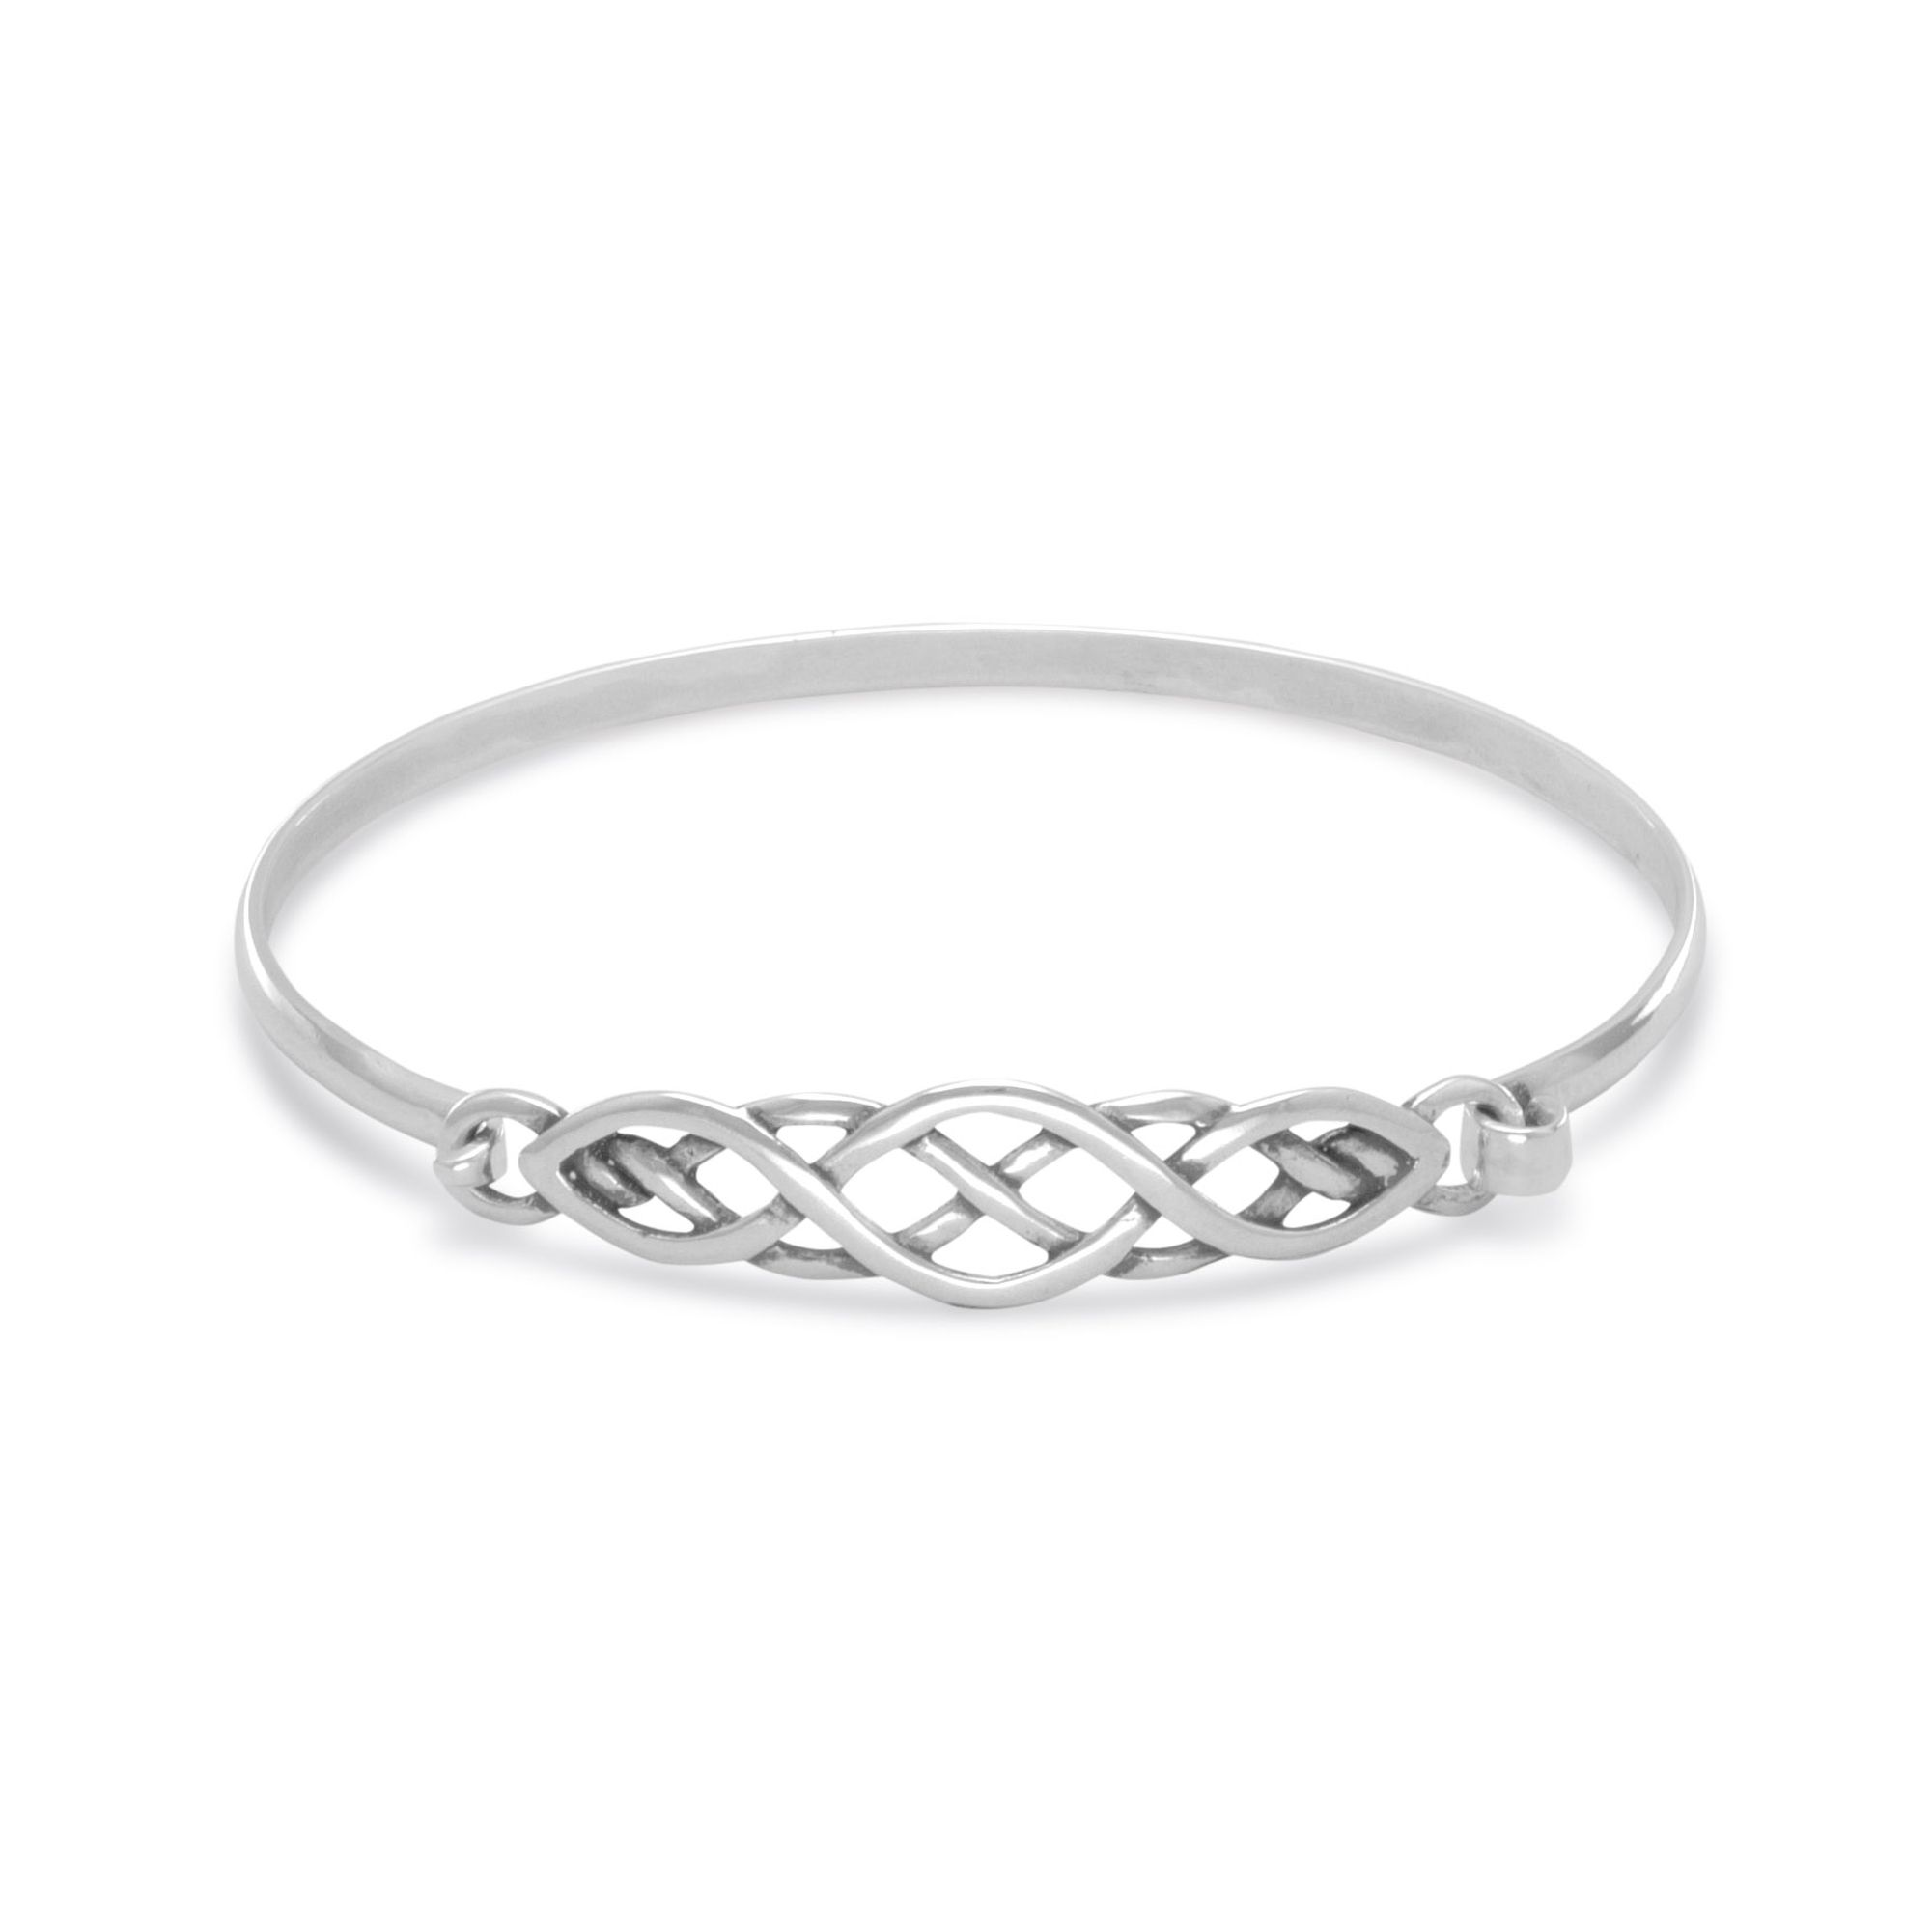 small white bamboo bangle fullscreen bracelets bracelet jewelry gold in view silver bangles lyst gucci diamond